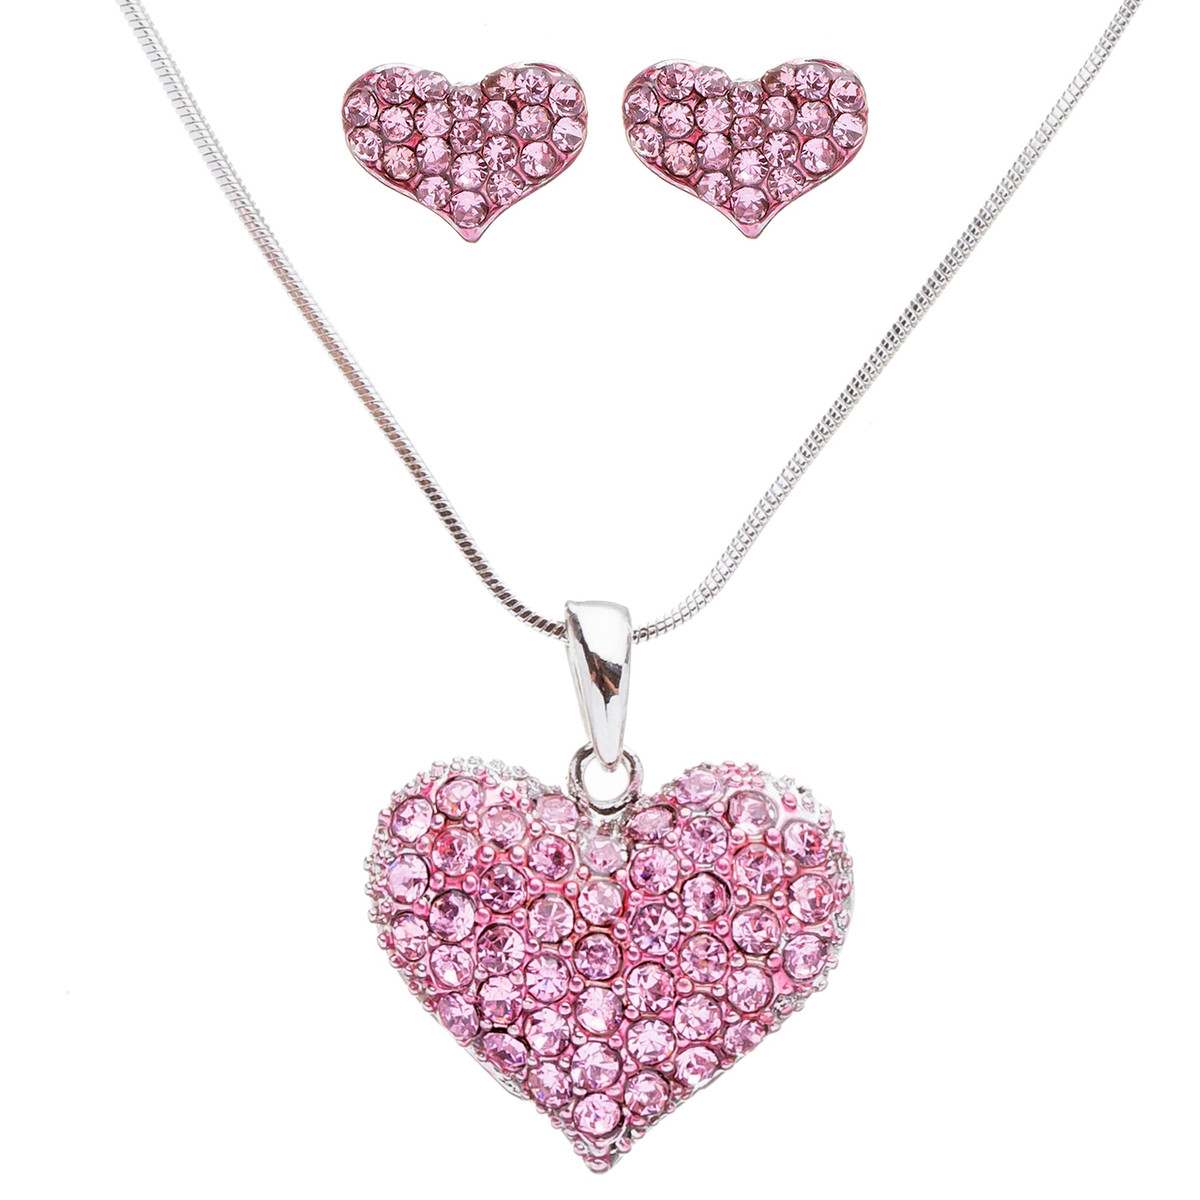 crystal sterling day valentine hearts silver necklace image products necklaces chain product for heart love gagafeel s gift women valentines pendant jewelry